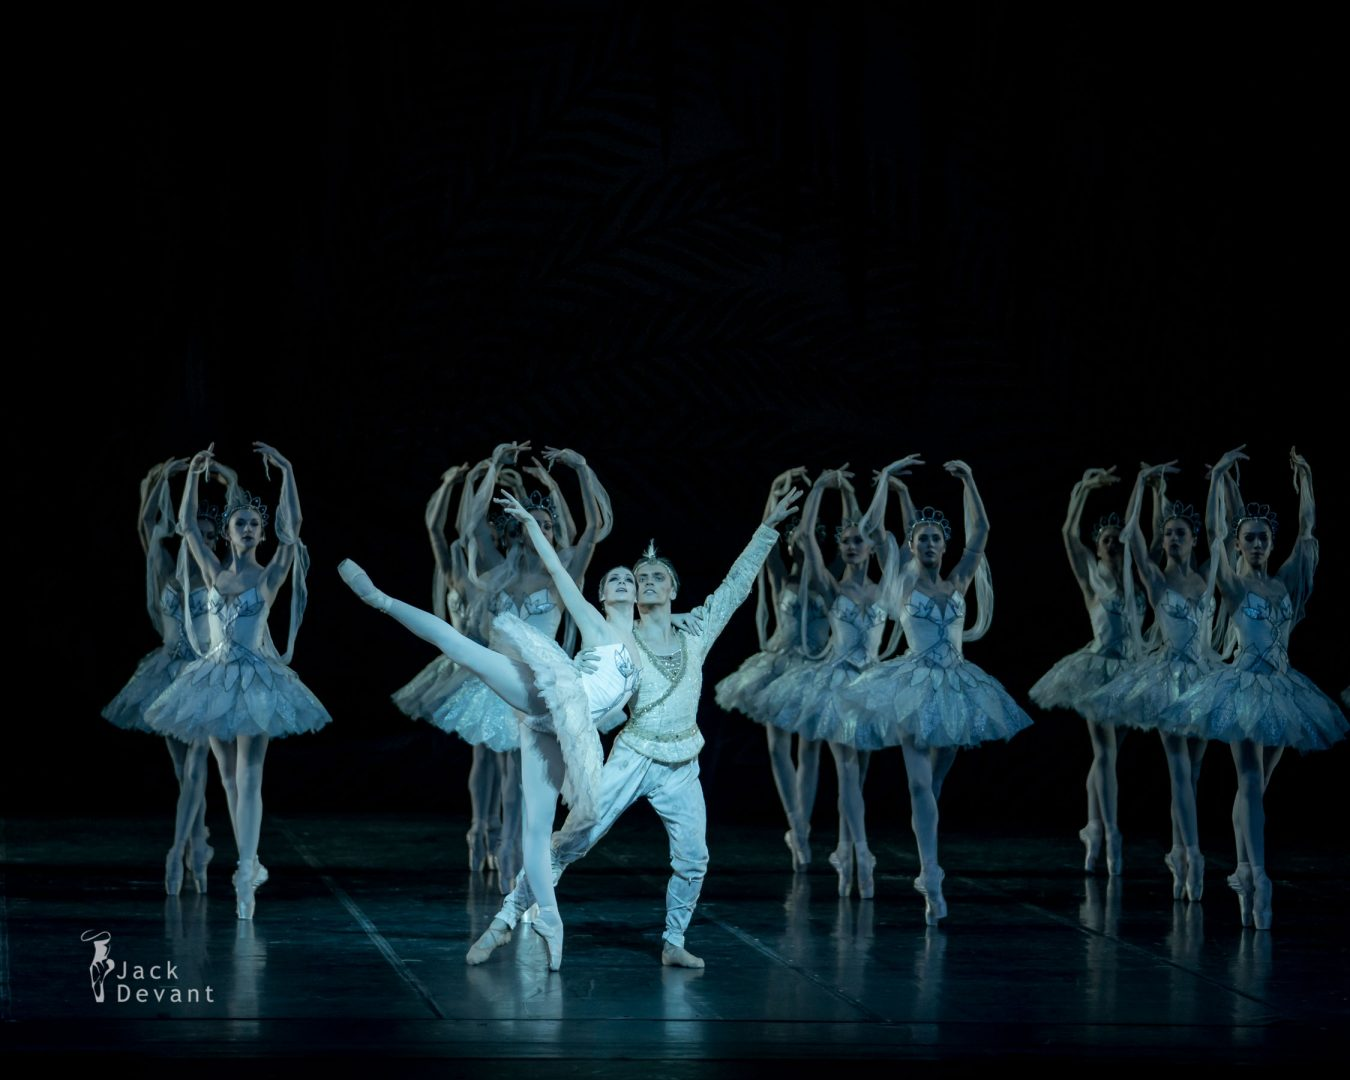 The Kingdom of the Shades Laurretta Summerscales as Nikiya, Sergei Polunin as Solor corps de ballet